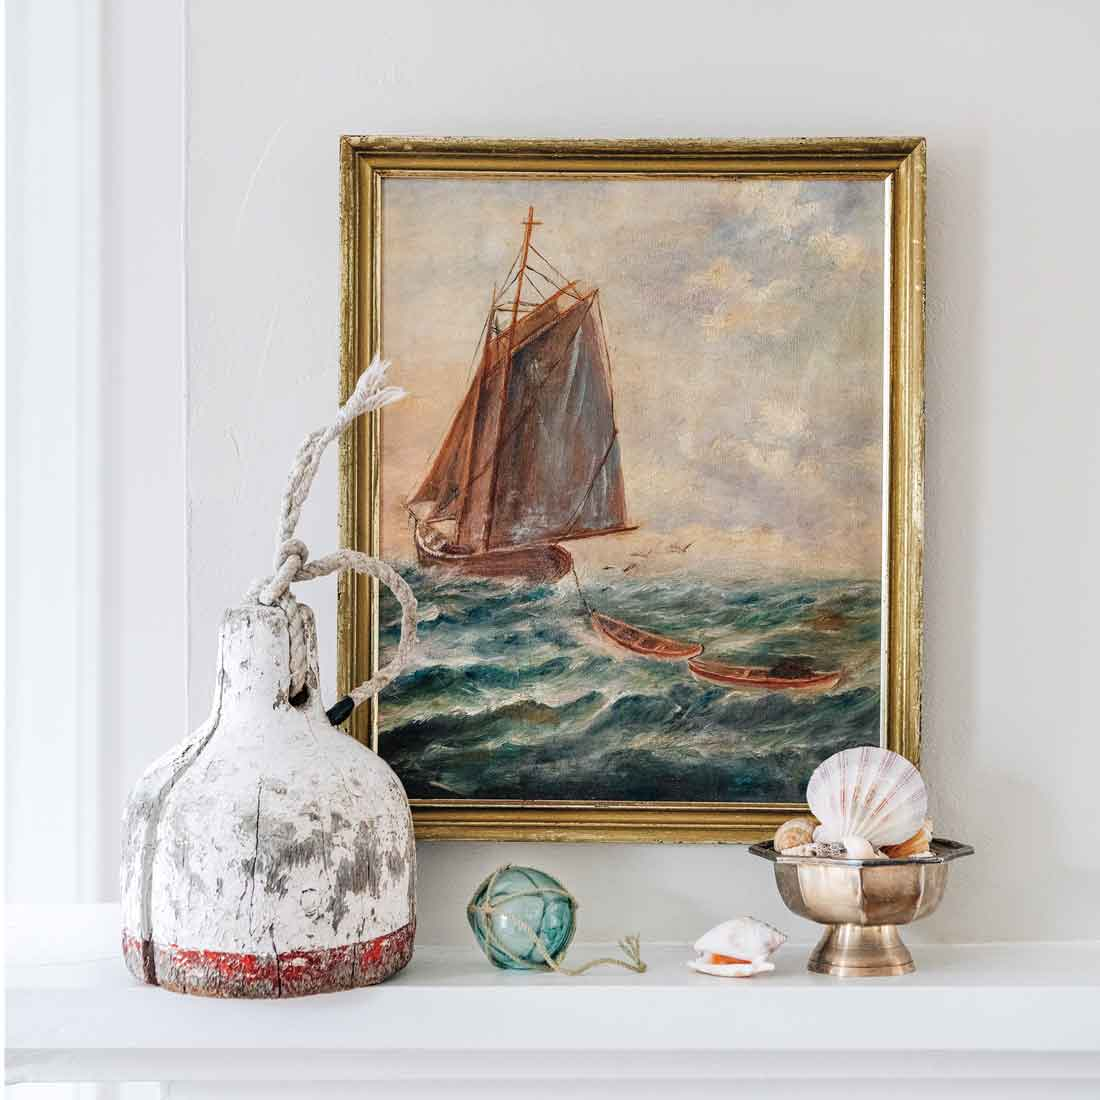 """Donovan was thrilled to find this unusual ship-and-dories scene, shown with a wooden buoy, Japanese fishing float, and silver dish. """"Put the right knickknacks in a group setting and it works,"""" she says."""